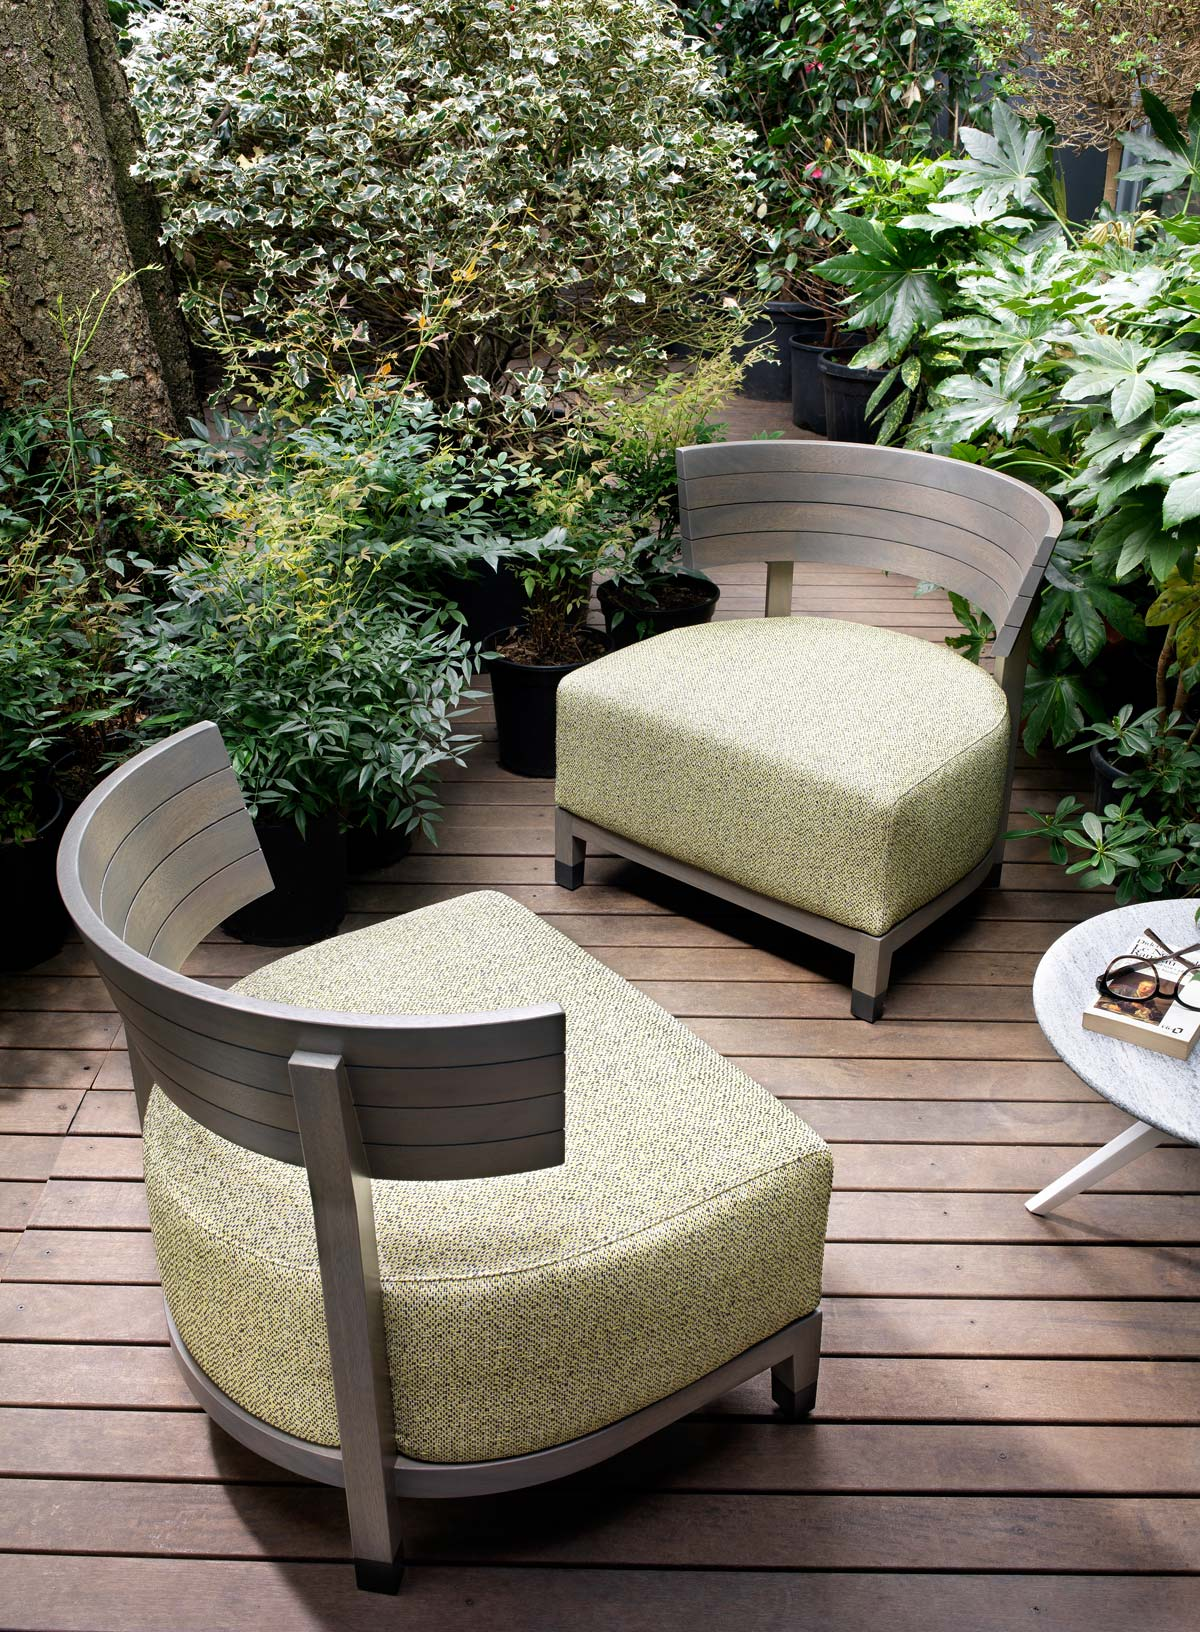 Thomas outdoor armchairs